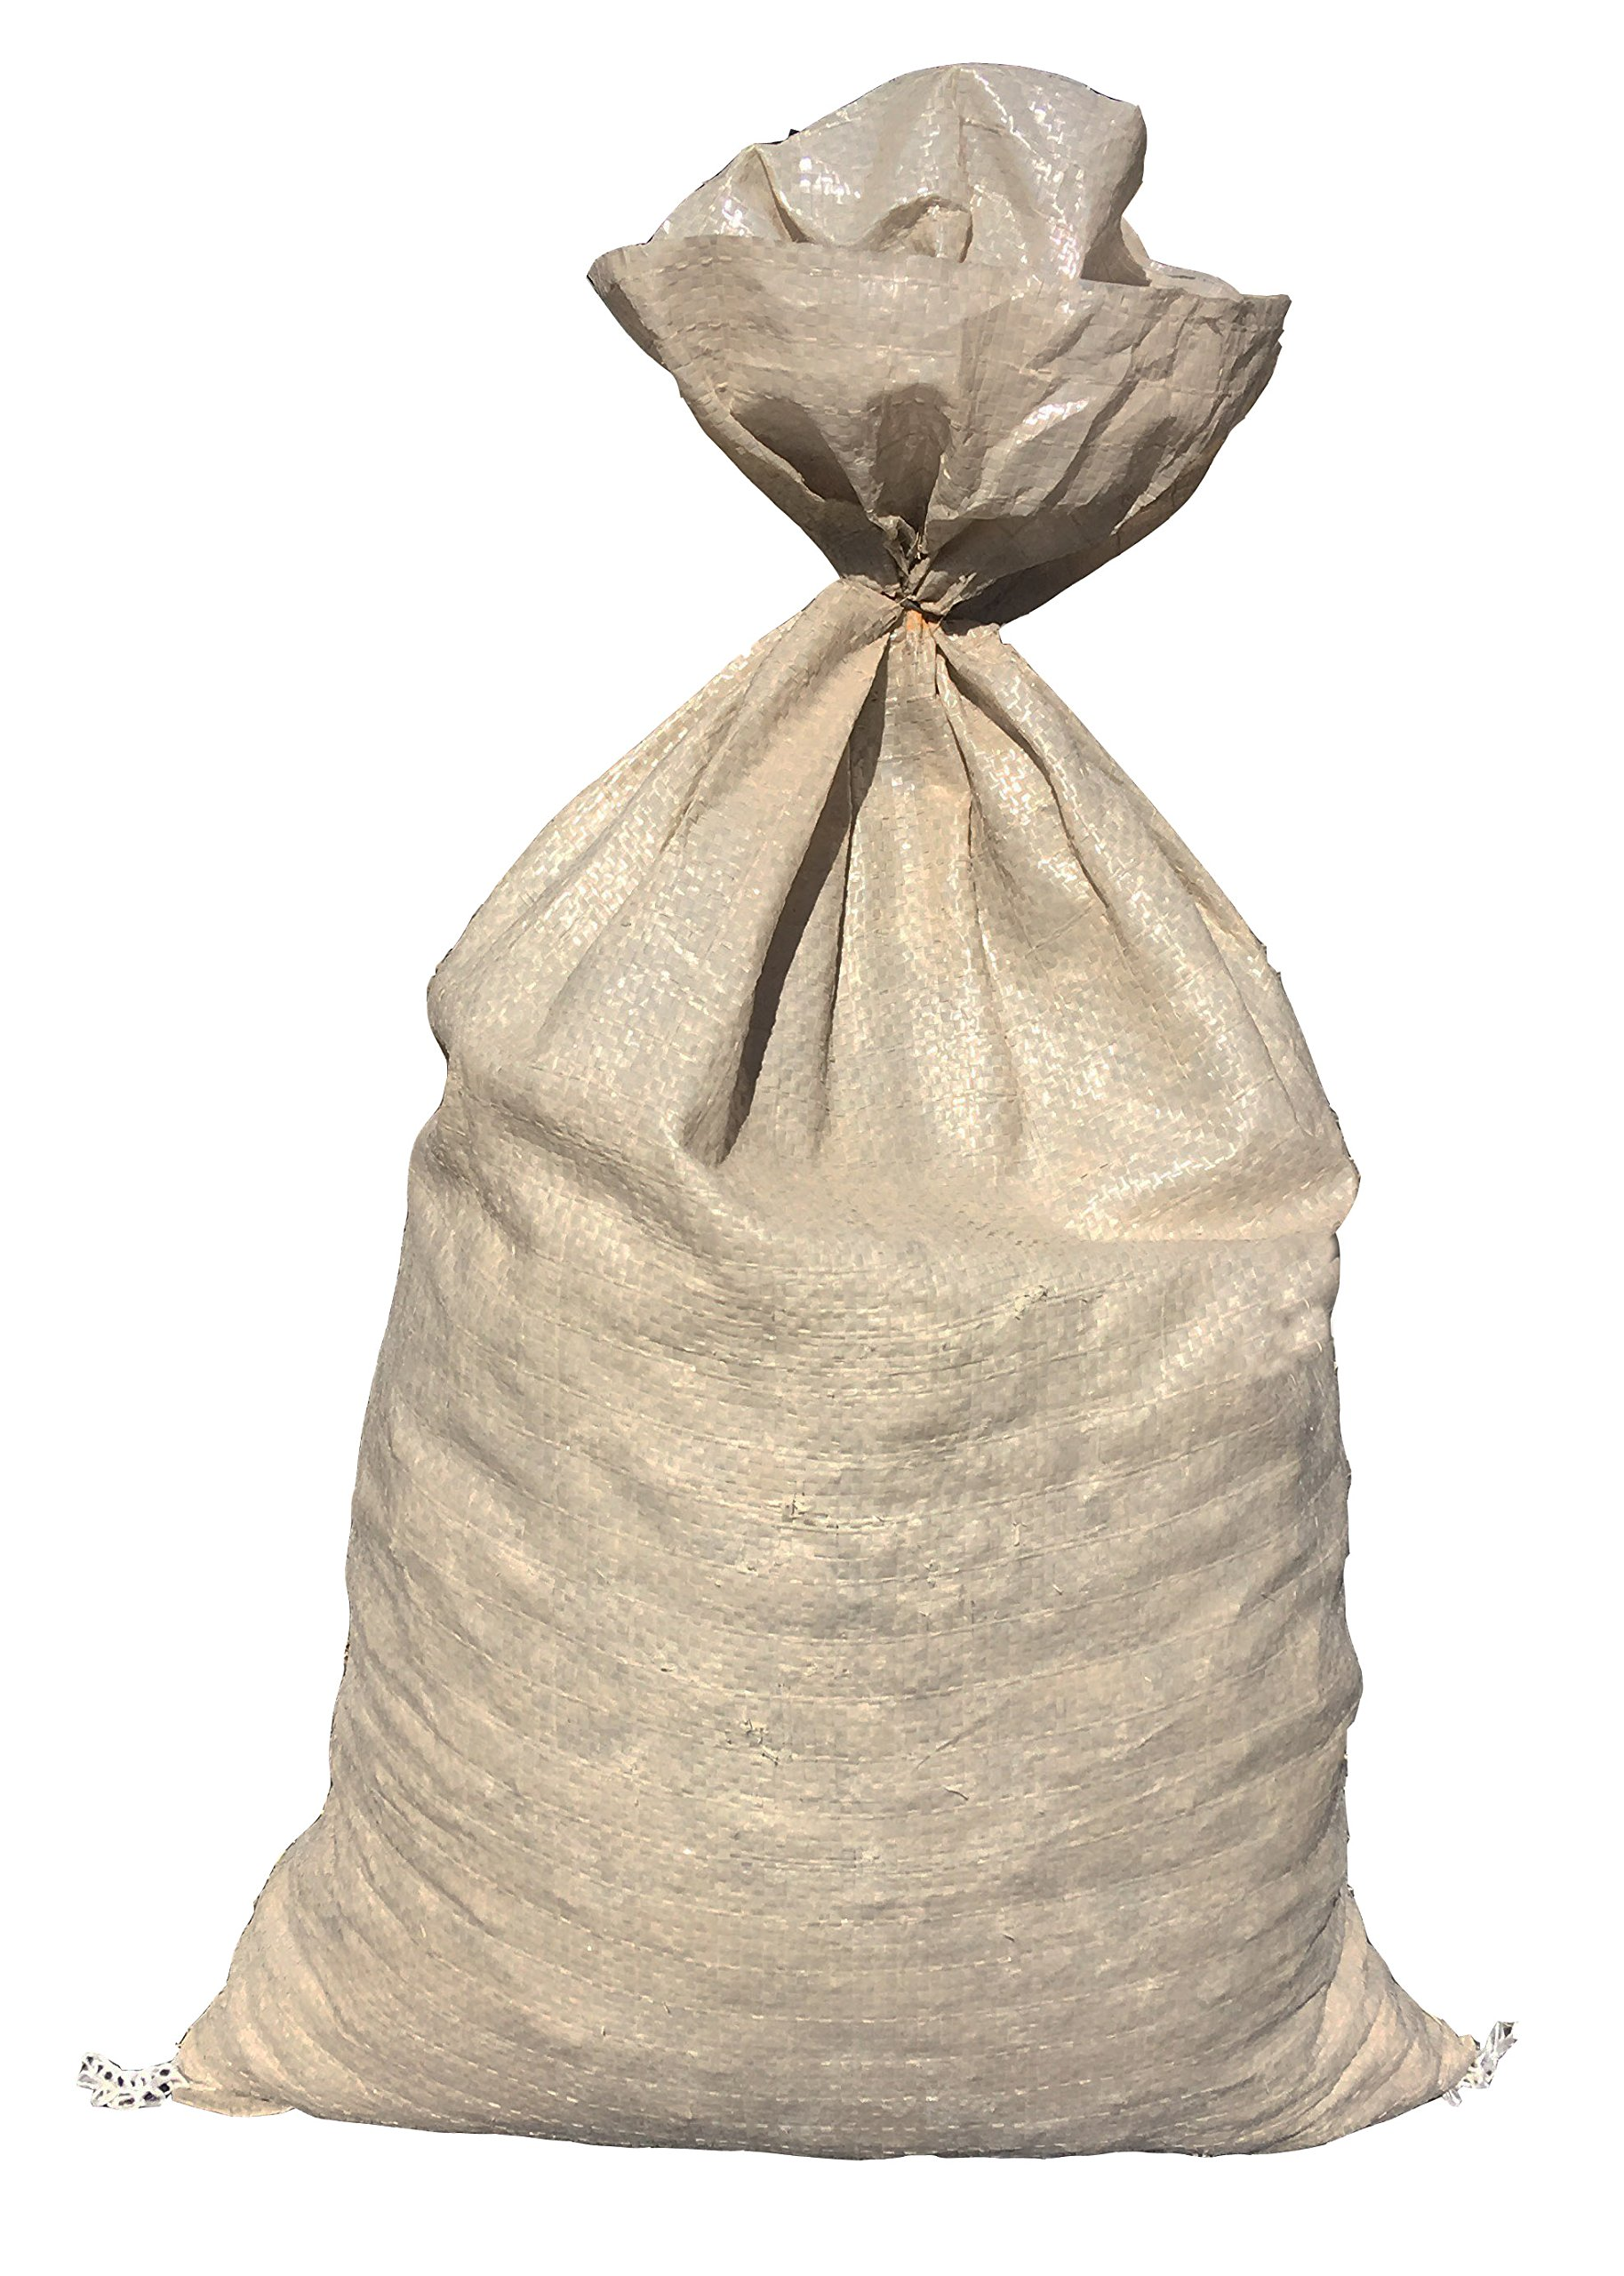 Sandbaggy - Empty Poly Sandbags W/UV Protection - Size: 14'' x 26'' - Color: Beige - Military Grade (50 Sandbags)